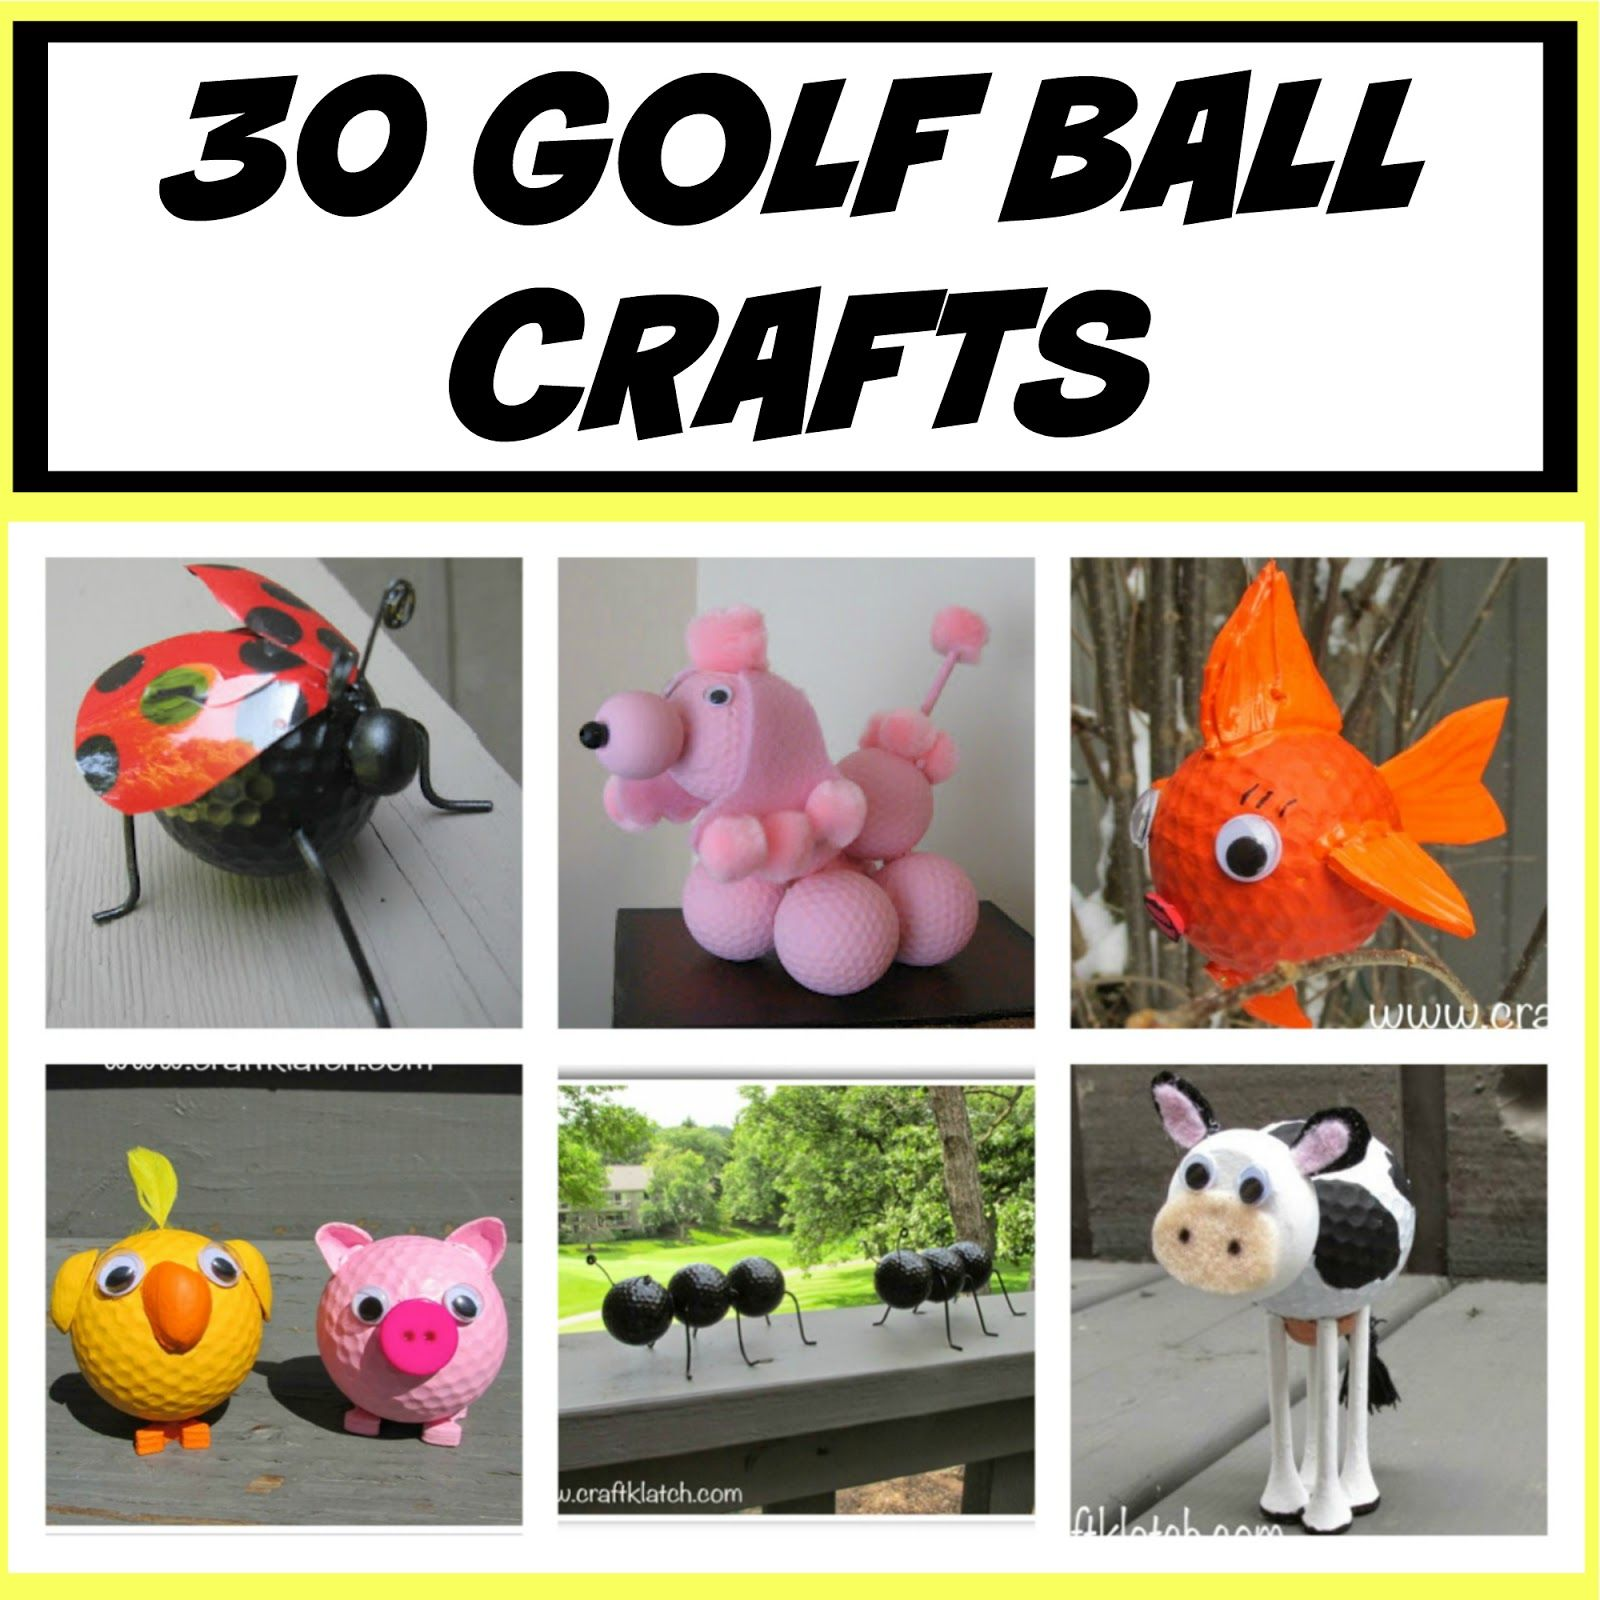 Merveilleux Golf Ball, Golf Ball Crafts, How To, How To Make, Recycle,